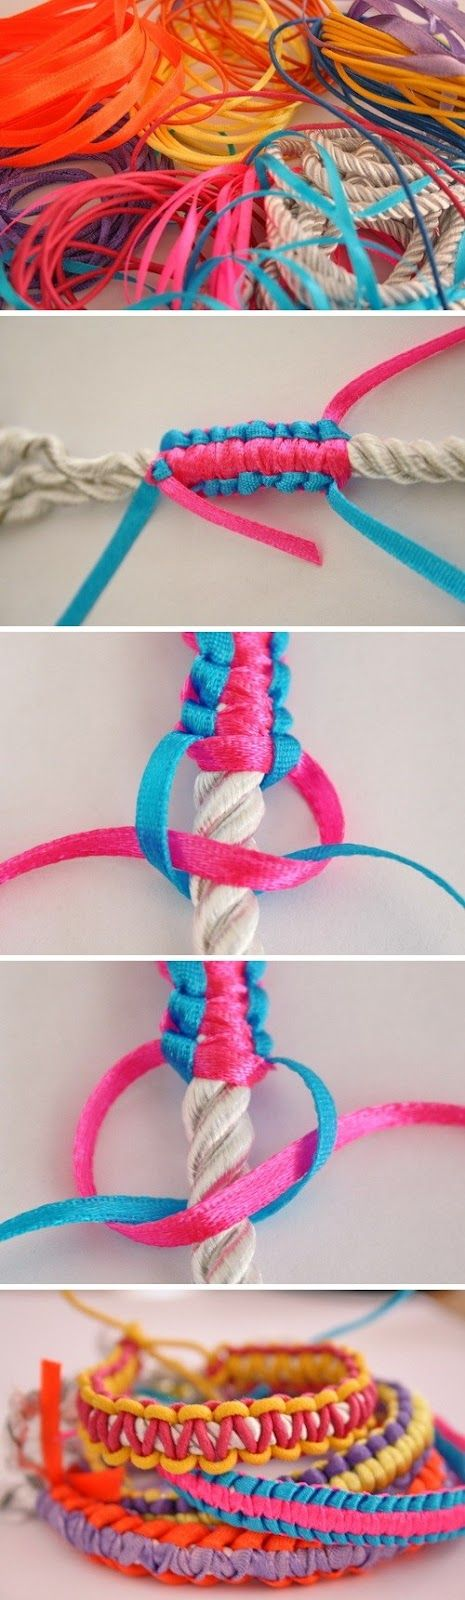 Cute hand-made bracelets  jarrah and nik would LOVE to make these with me :)